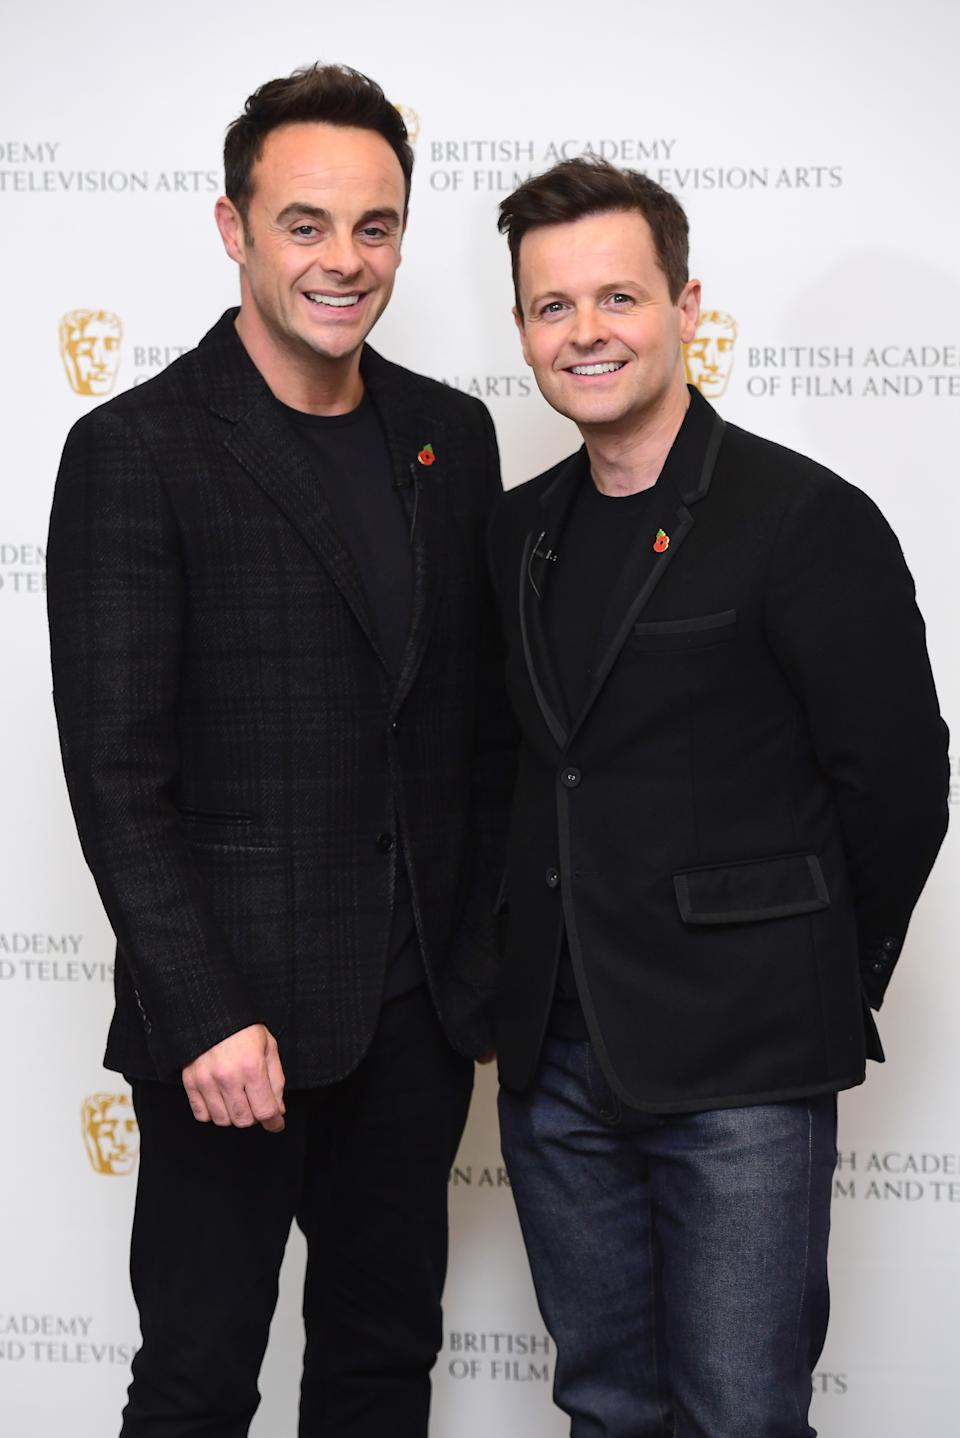 Anthony McPartlin and Declan Donnelly at a BAFTA TV preview of Ant and DecÕs DNA Journey held at the Barbican Centre in London. (Photo by Ian West/PA Images via Getty Images)